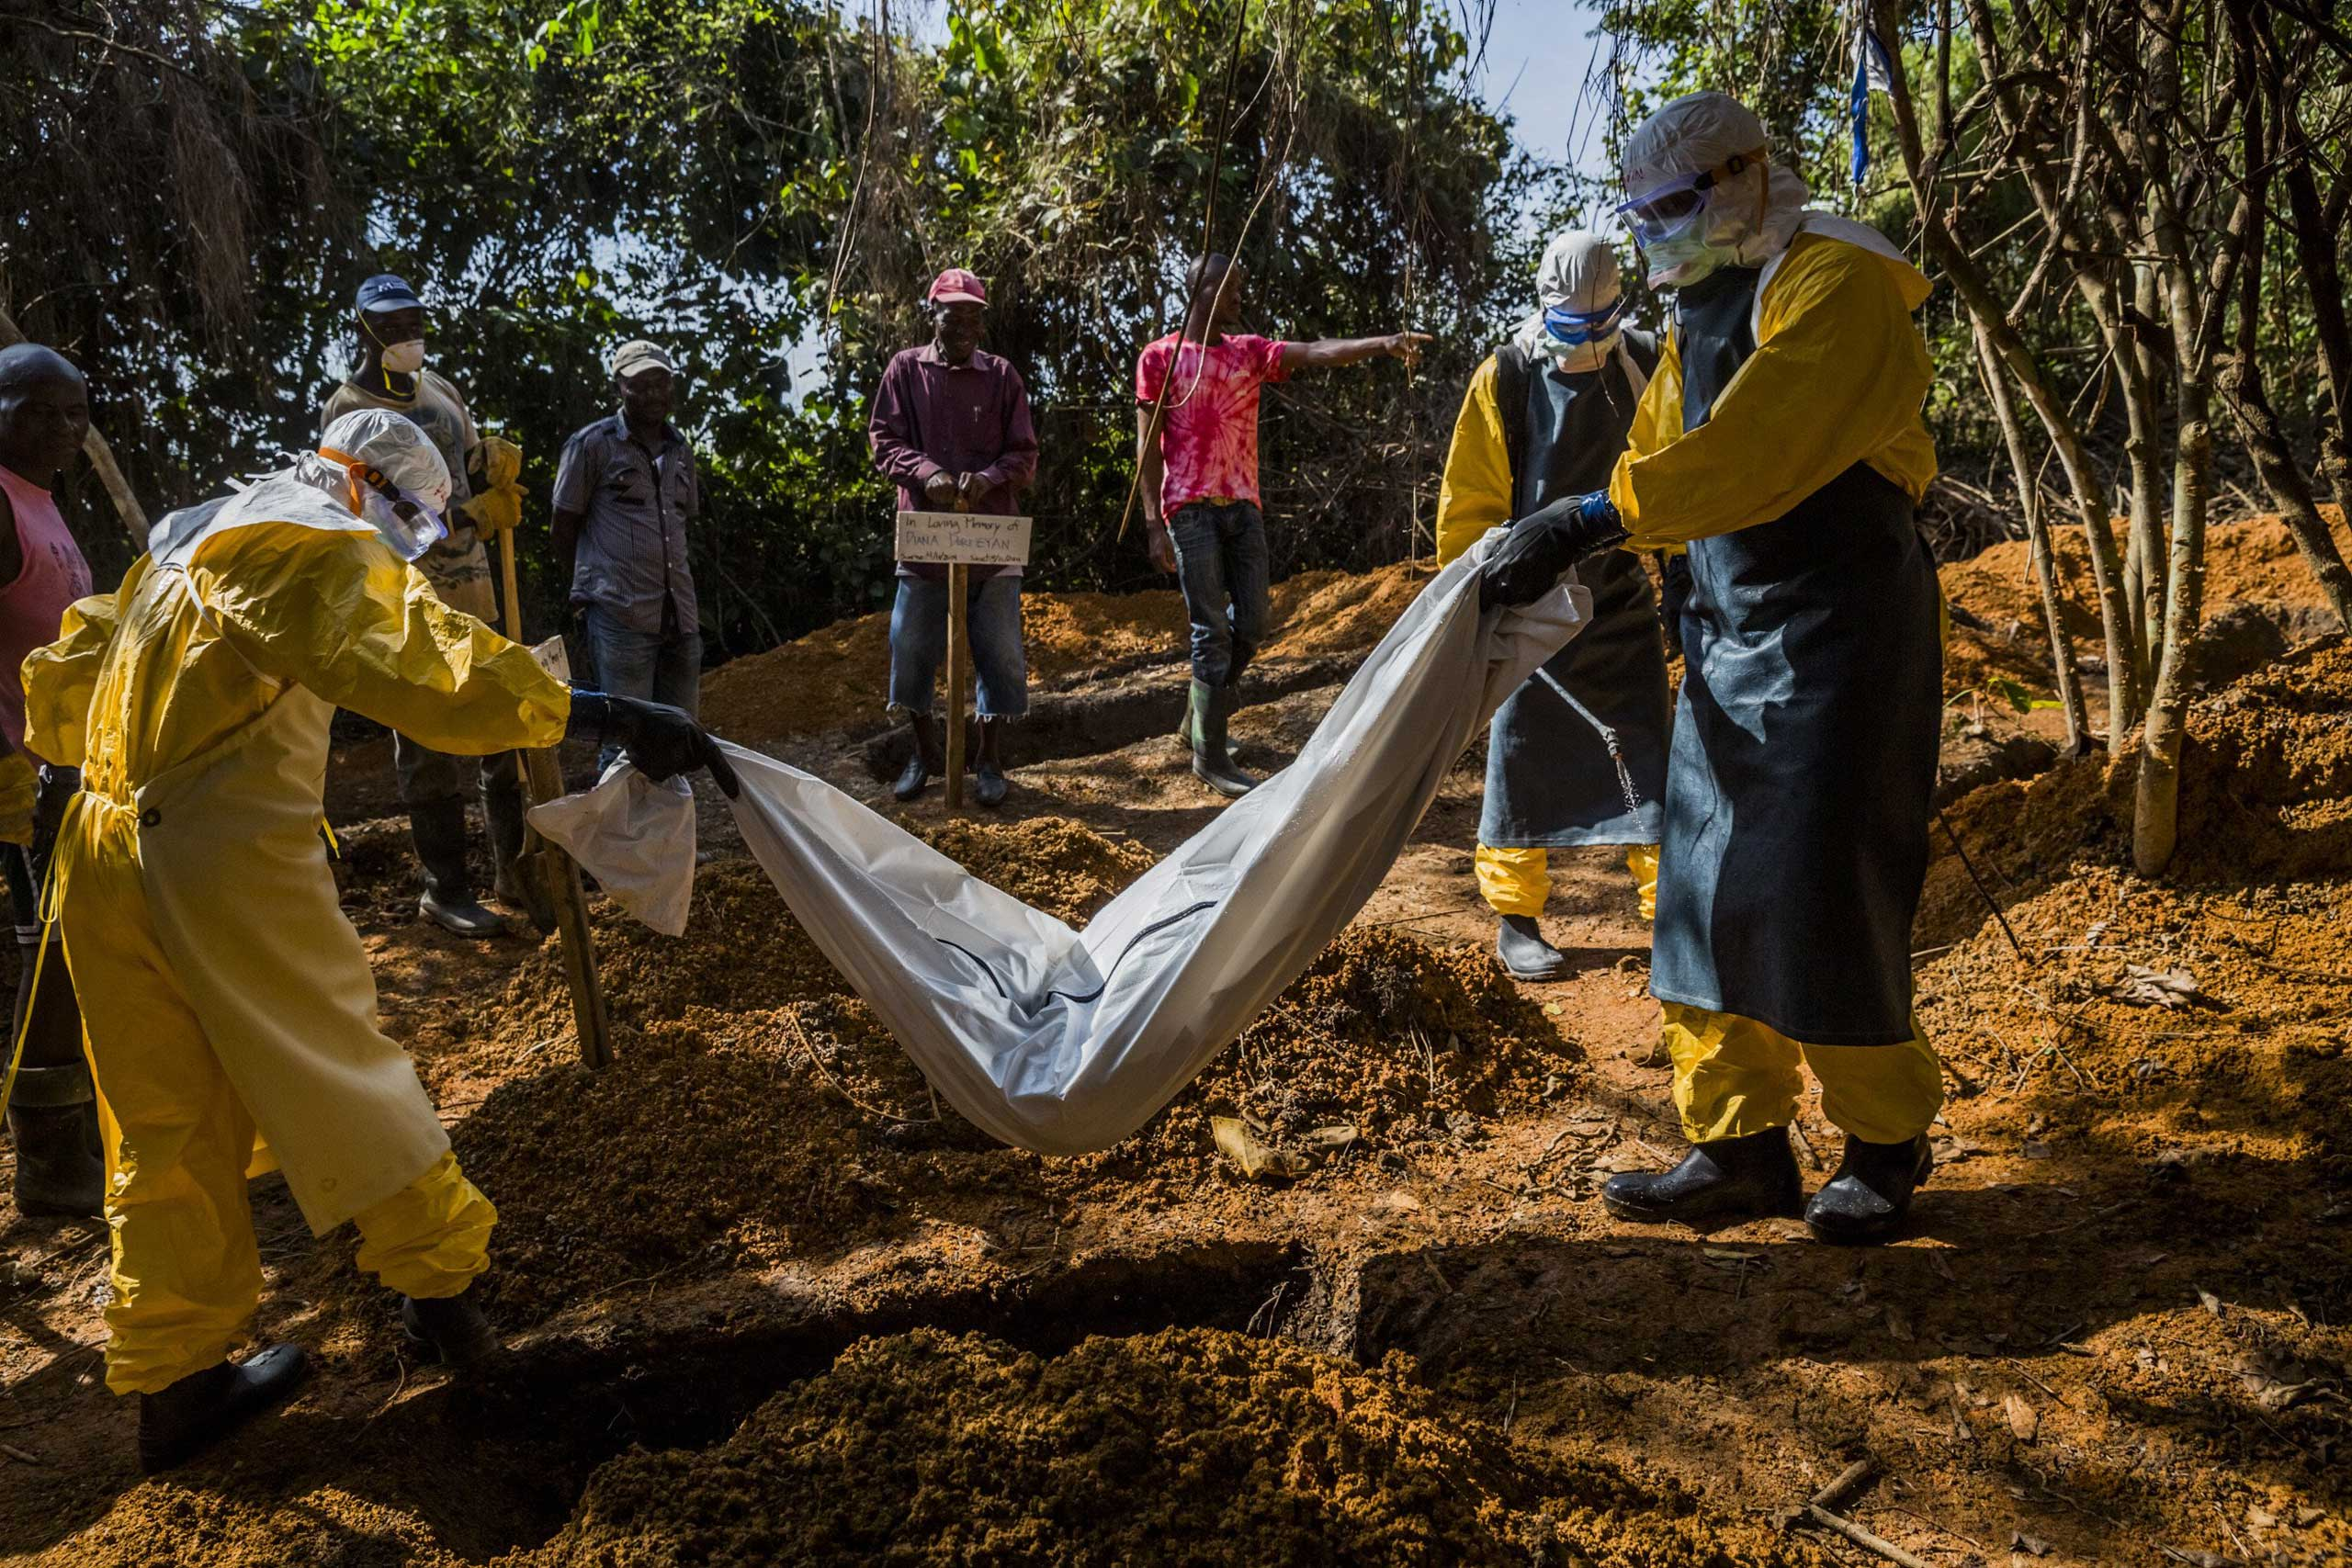 Members of a burial team wearing protective gear inter the body of 4-day-old Diana Dormeyan, named for her mother who died shortly after giving birth, at a graveyard adjacent to the Bong County Ebola Treatment Unit near Gbarnga, Liberia, Oct. 8, 2014.